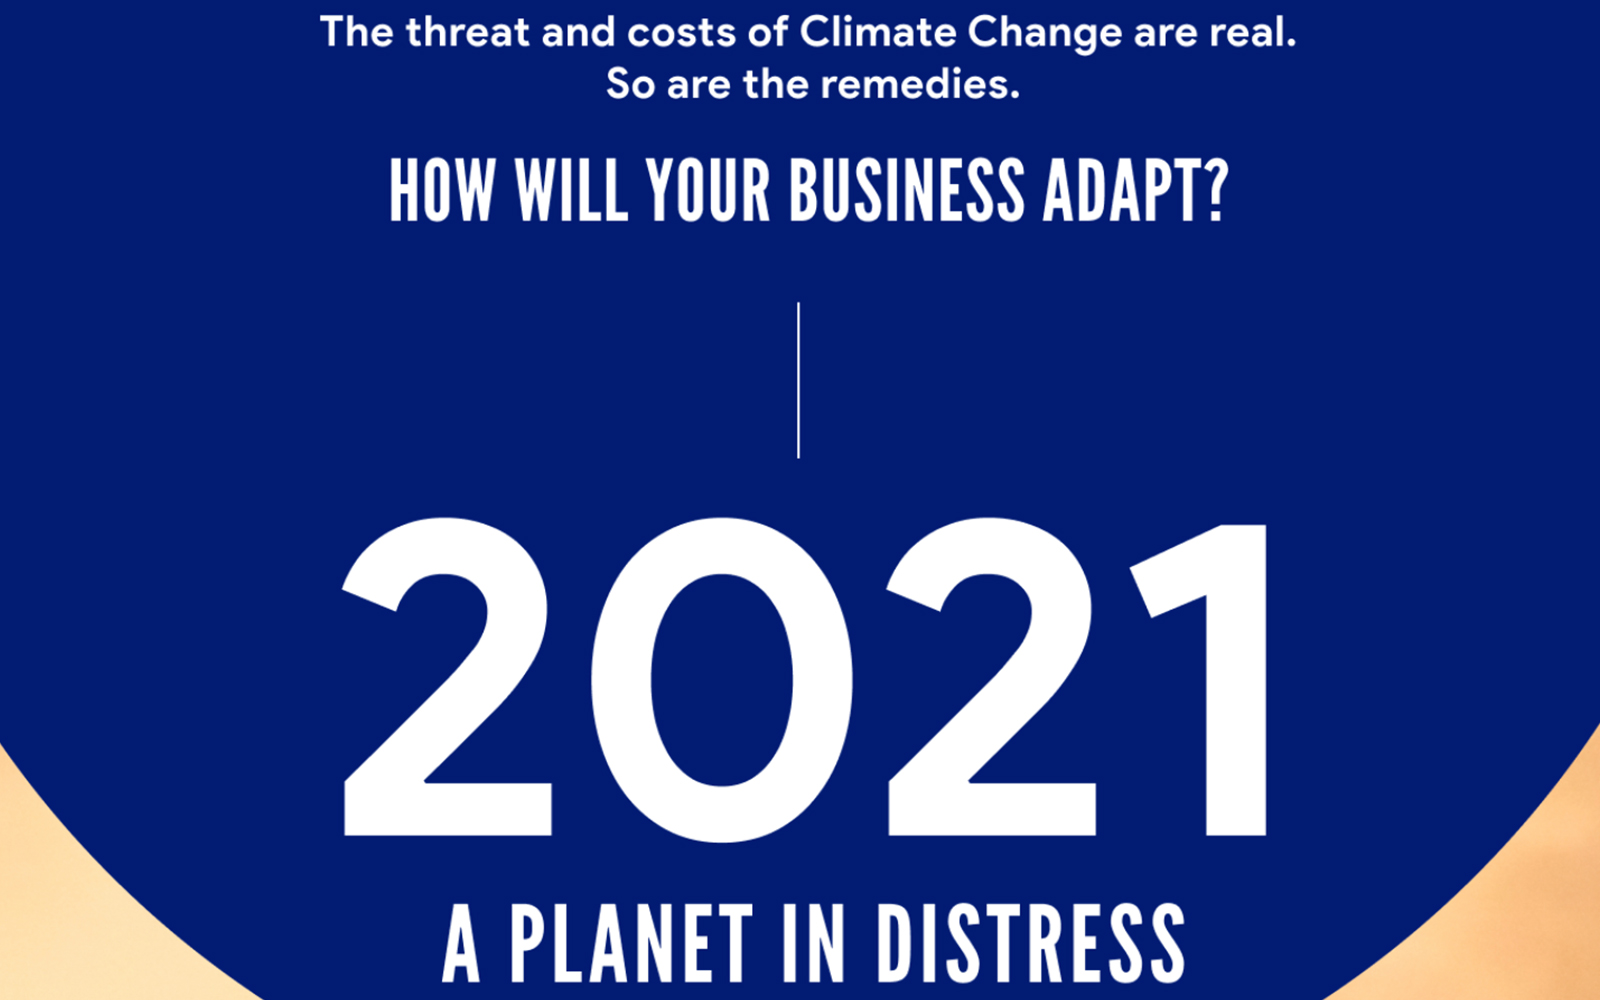 The Financial Costs of Climate Change